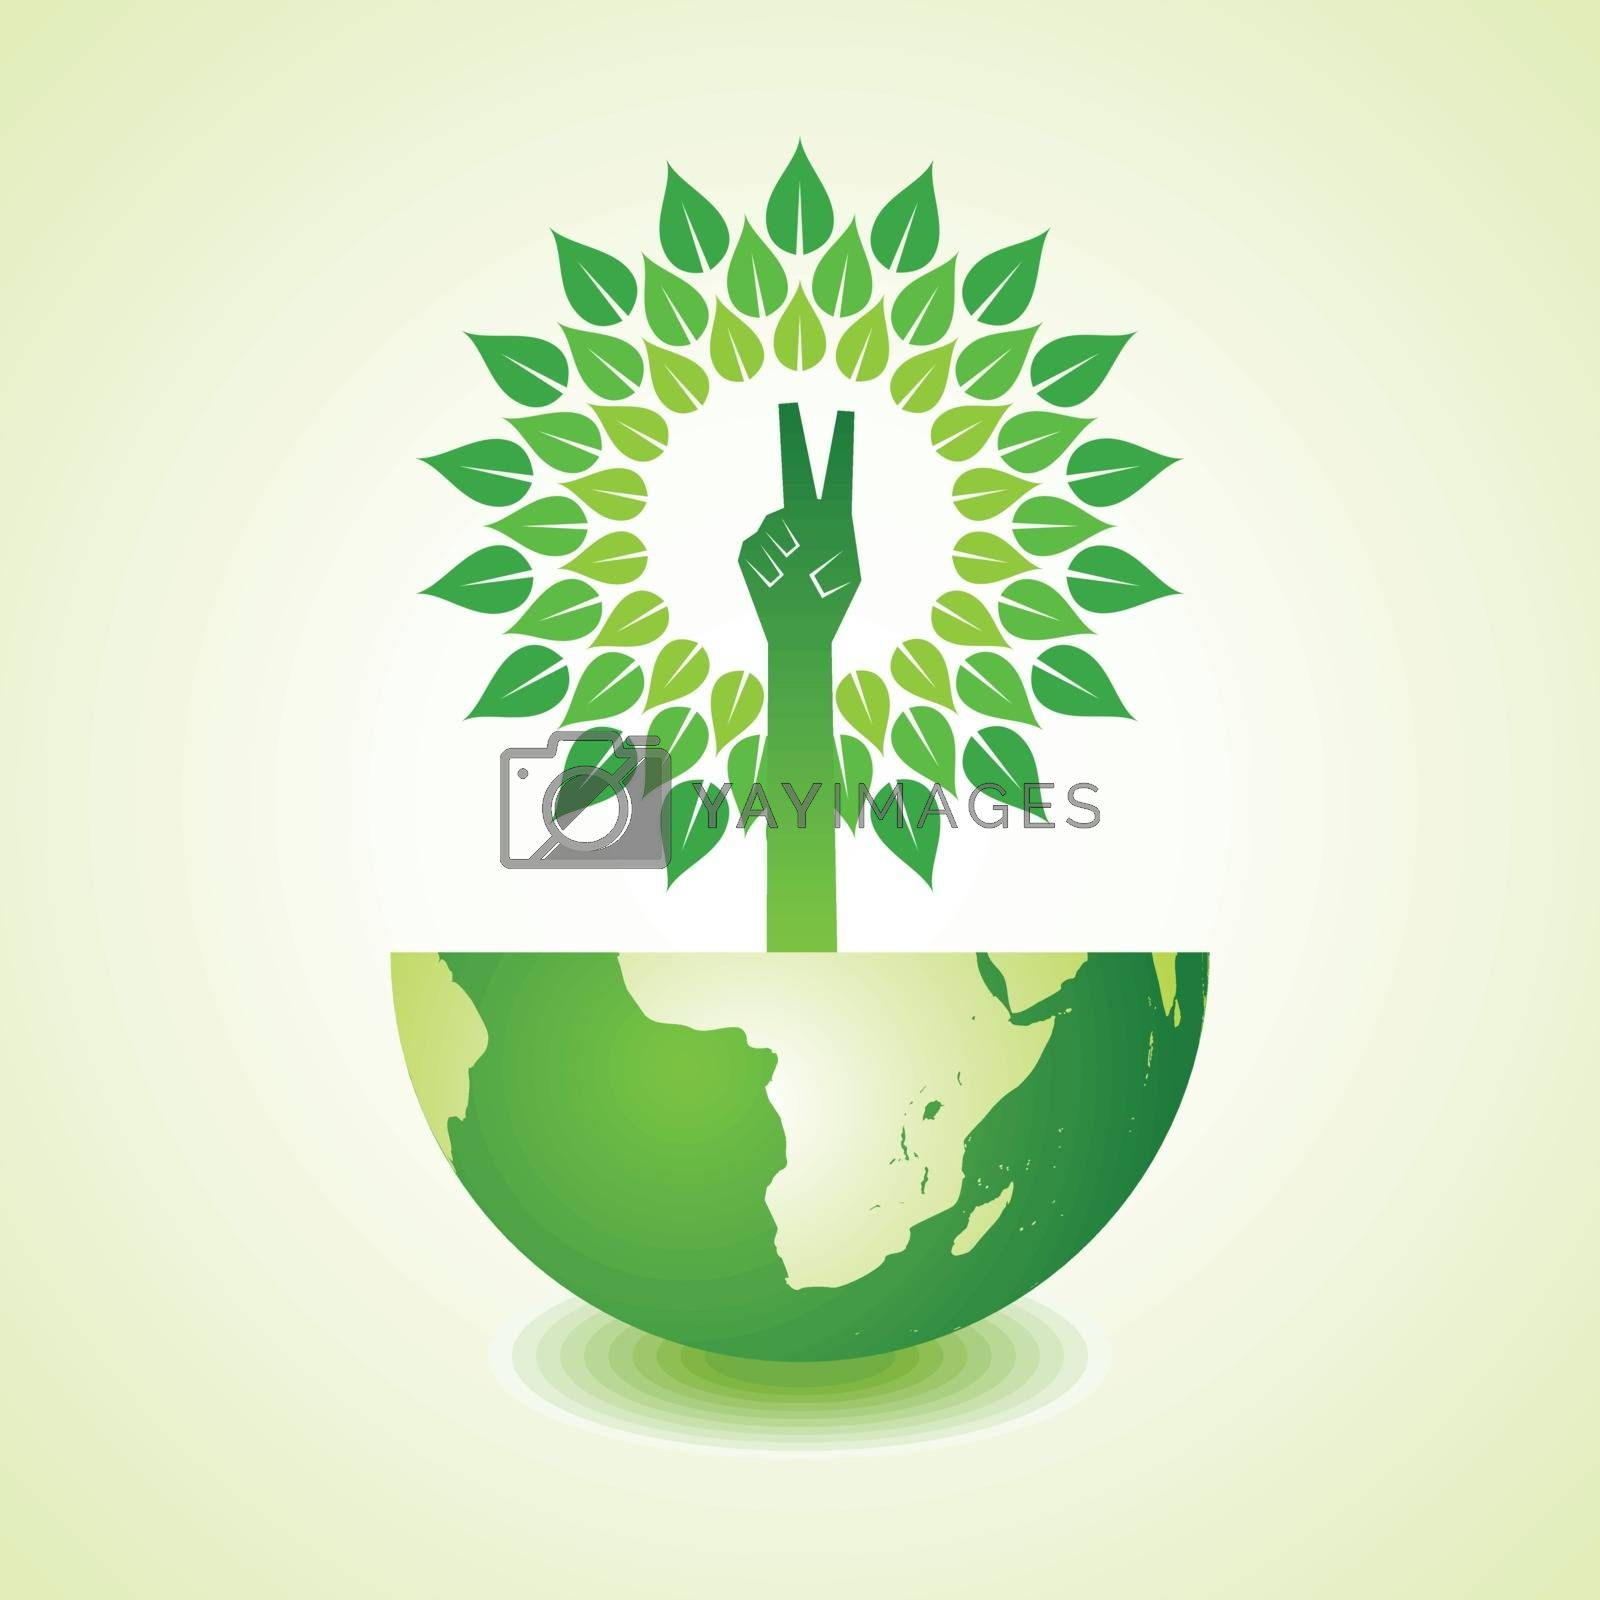 Victory hand make tree on earth - vector illustration